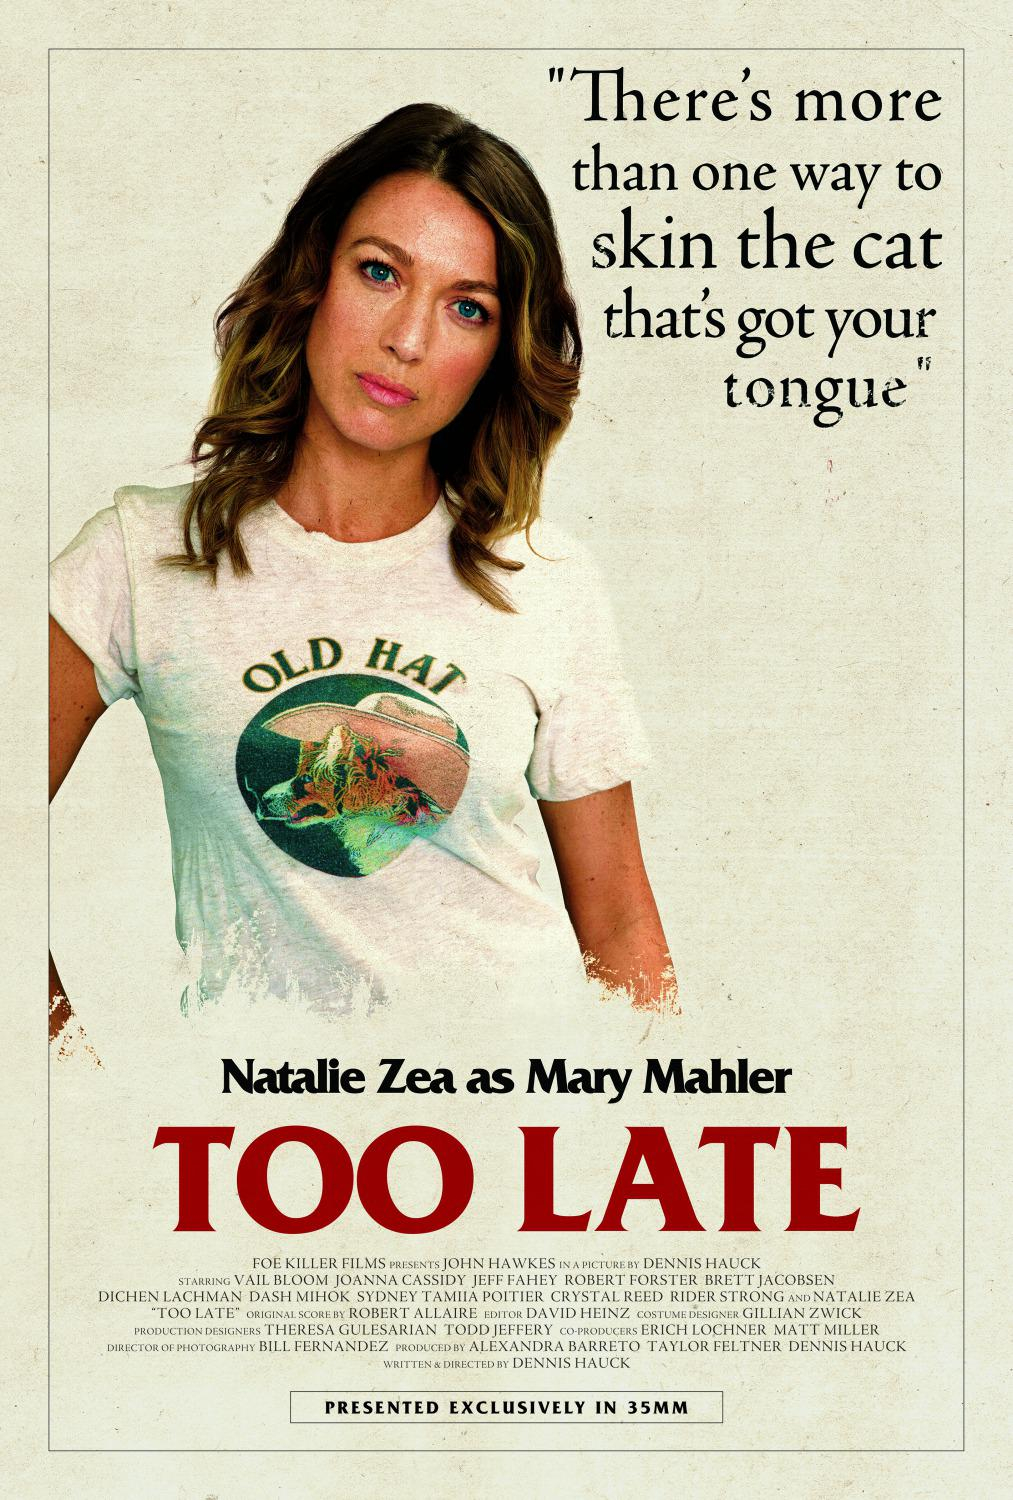 Troppo Tardi - Too Late - Natalie Zea as Mary Mahler